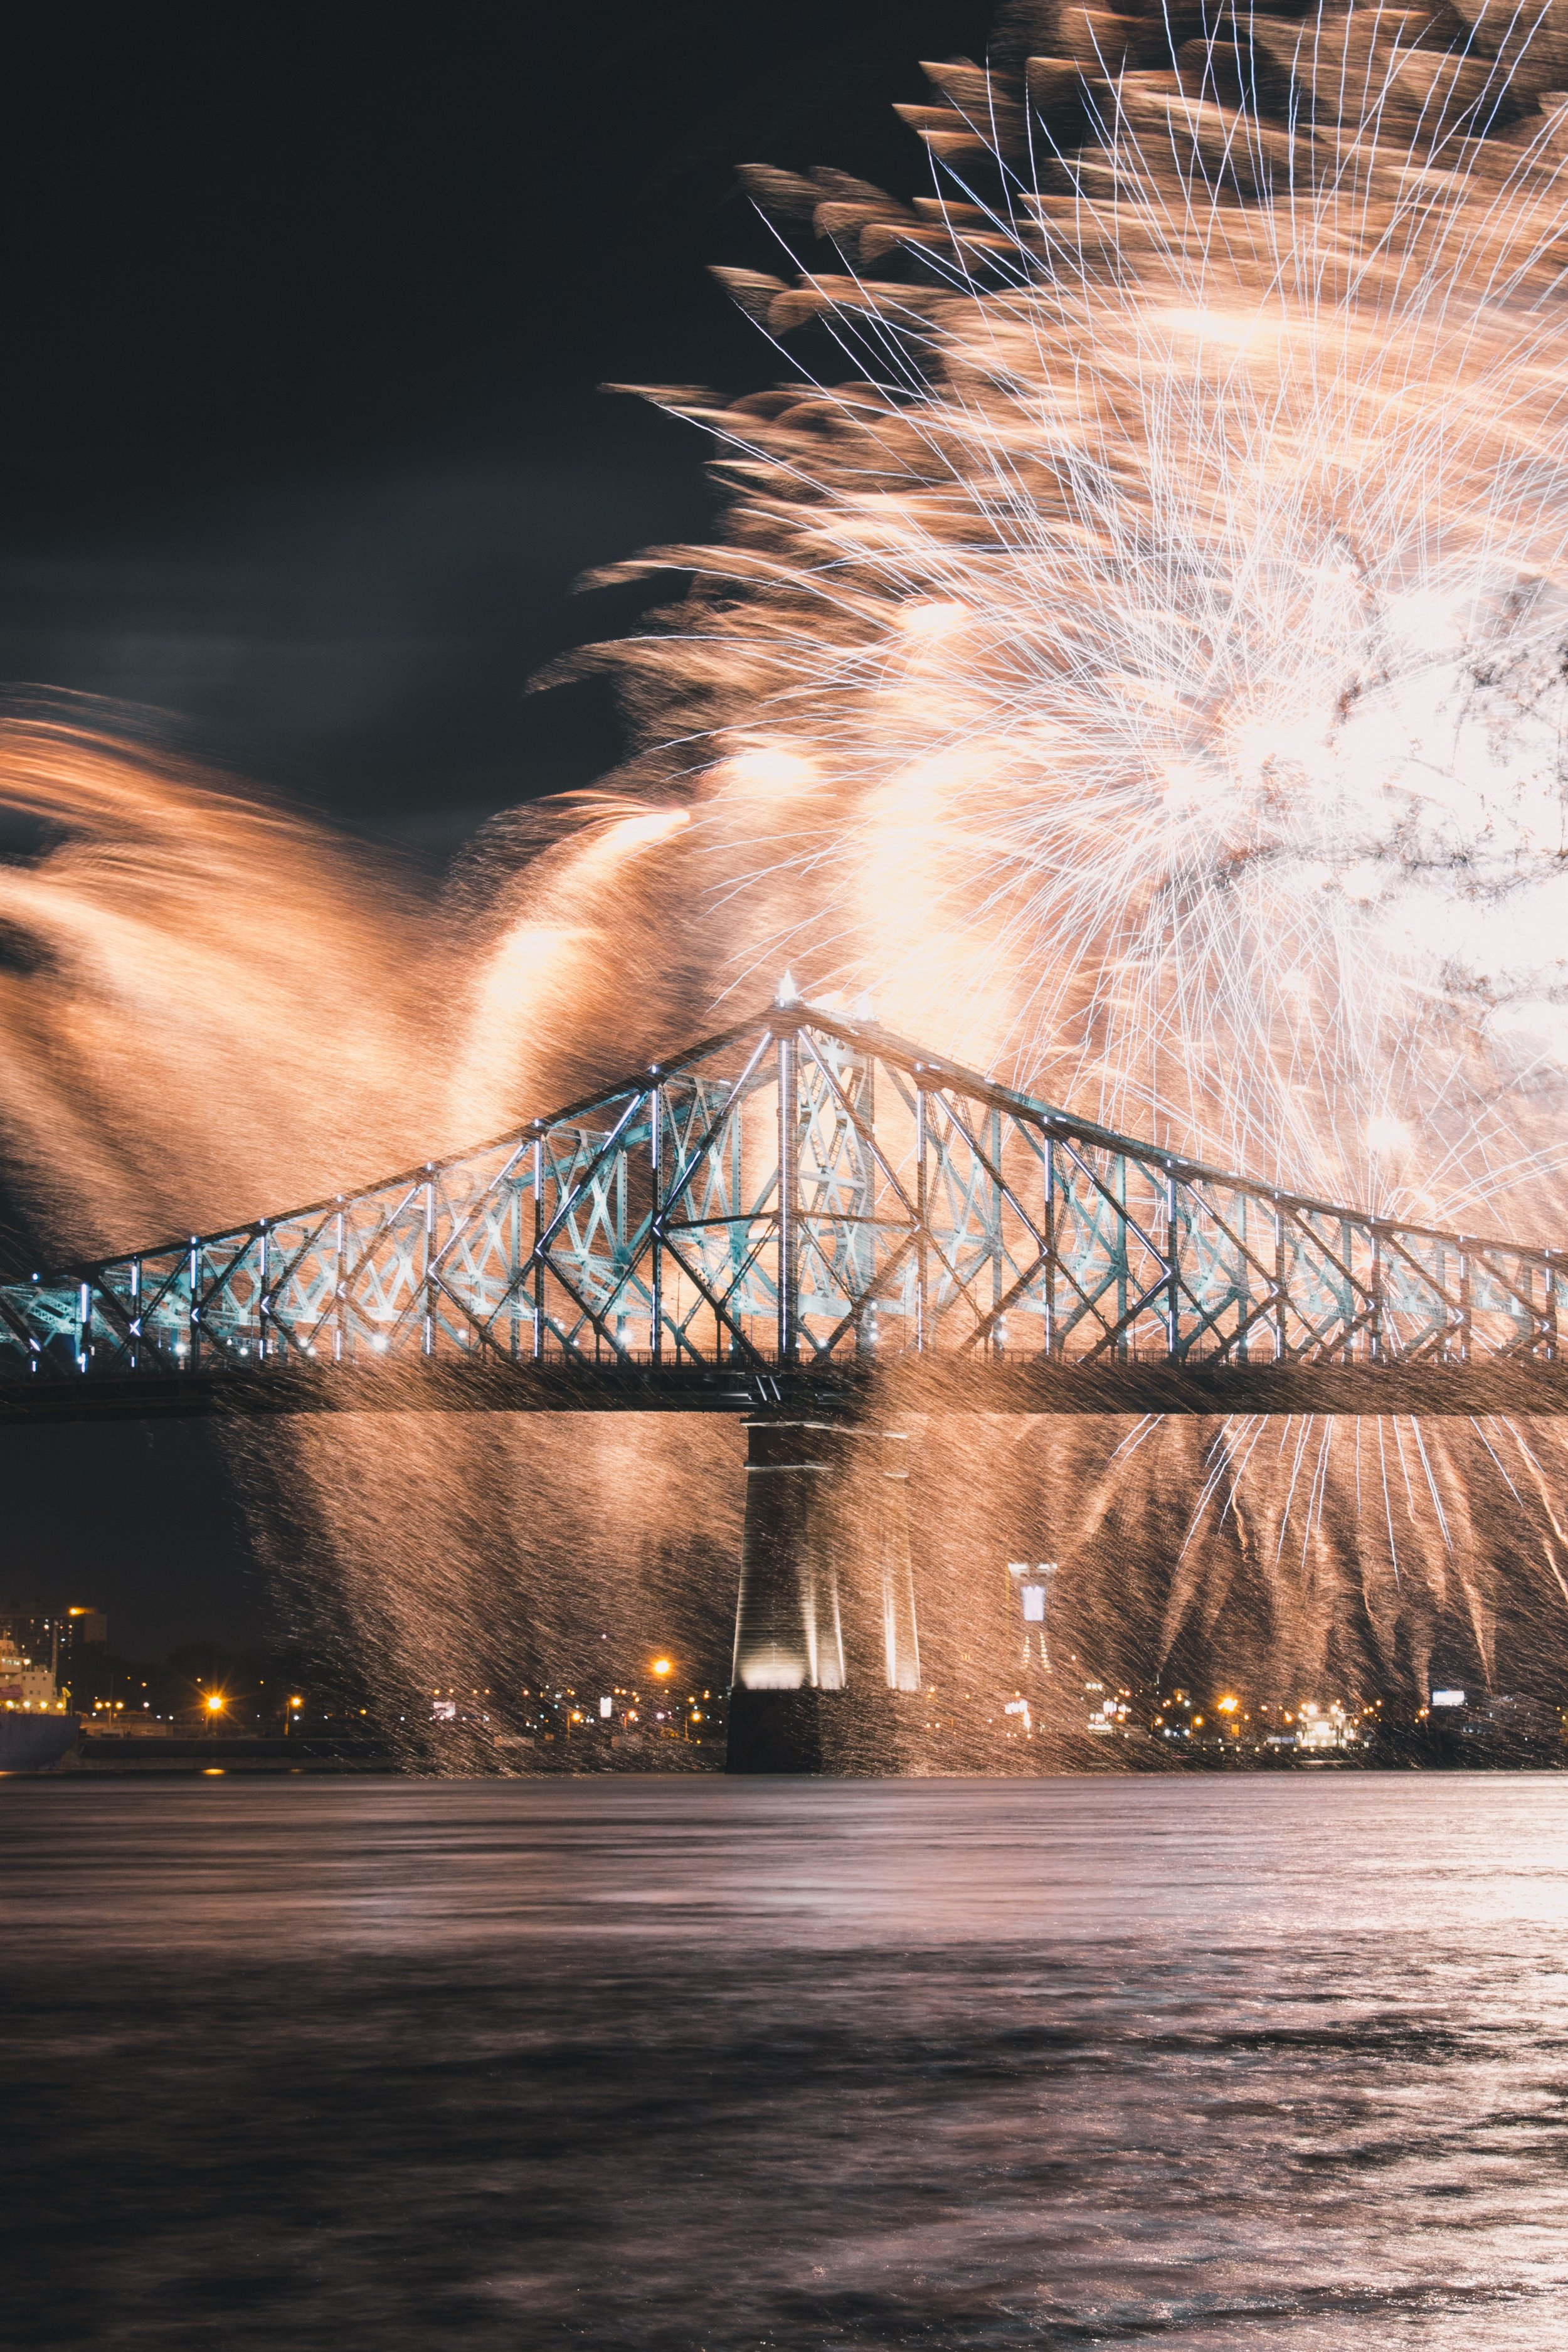 Thank you to Jonathan Denney for this photograph taken during the Montreal International Pyromusical Competition